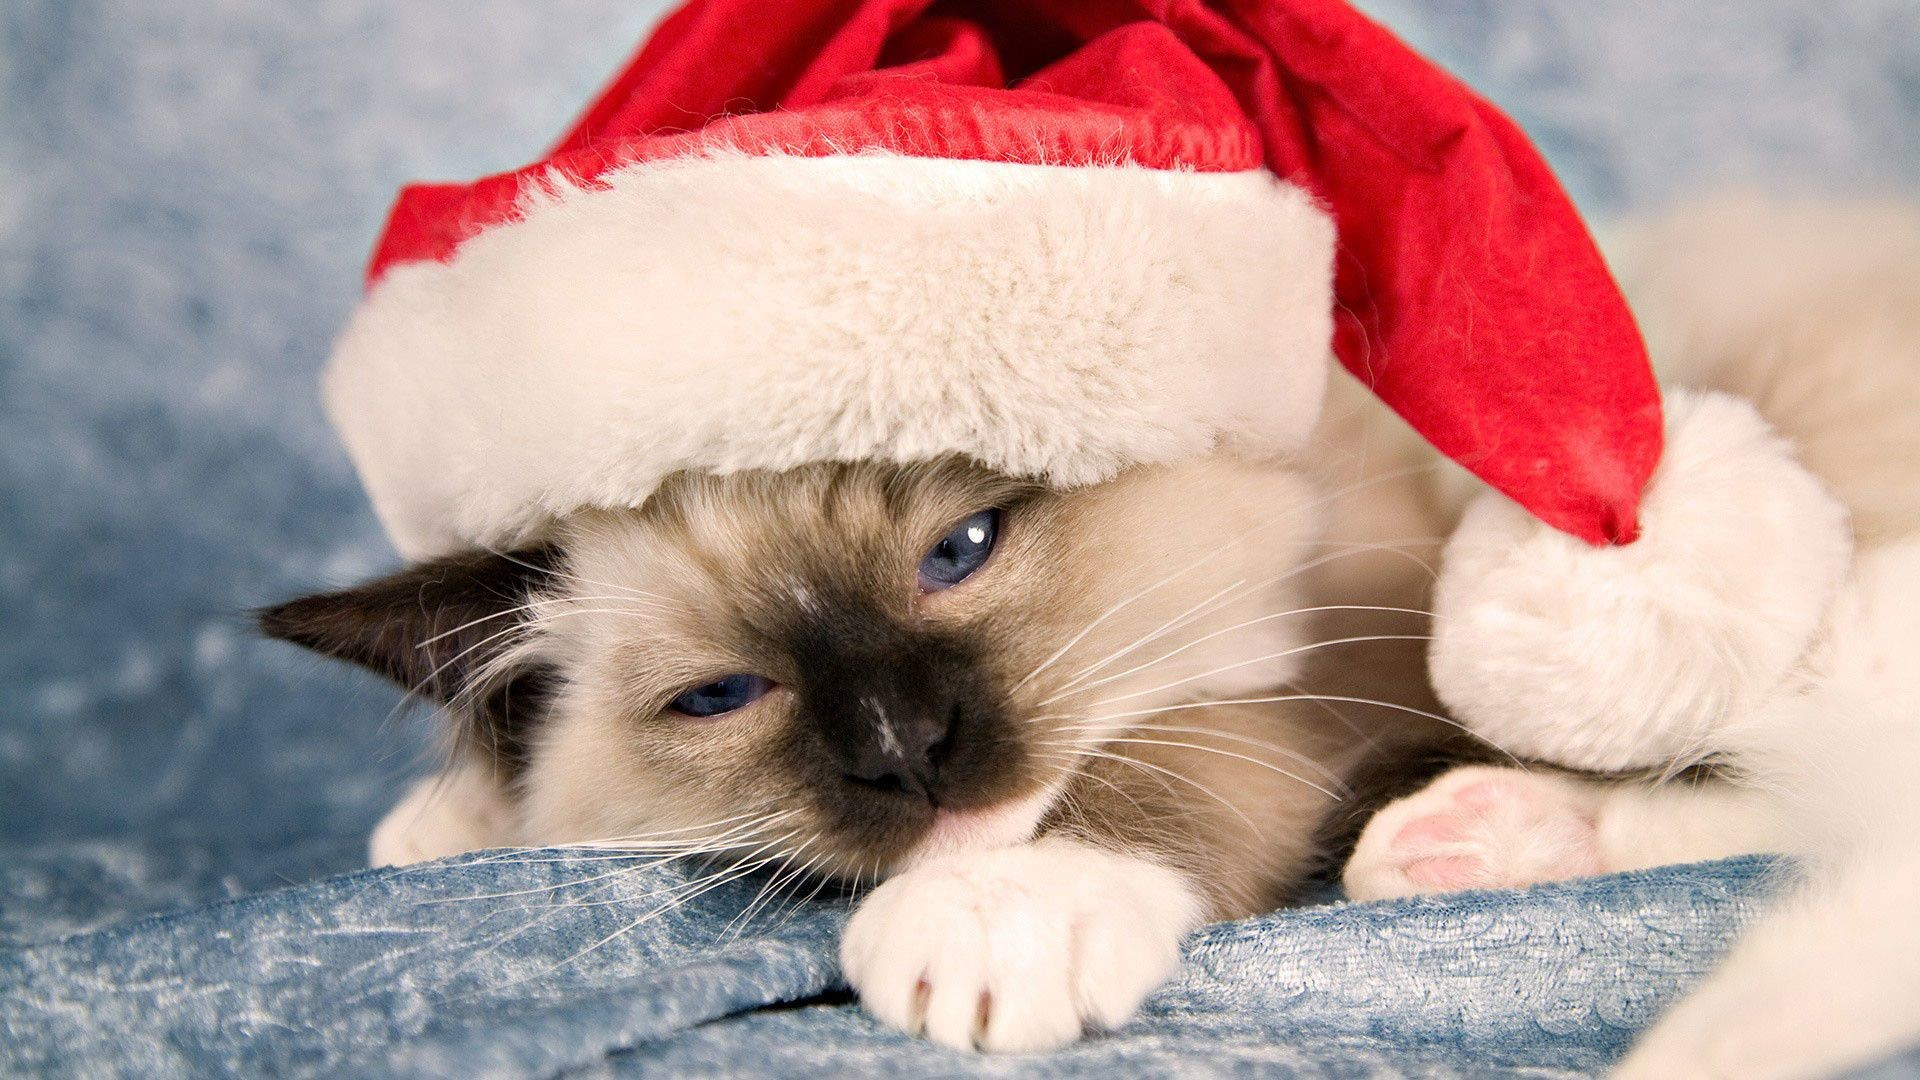 Cute Wallpapers For Desktop 66 Images: Siamese Cat Wallpapers For Desktop (66+ Images